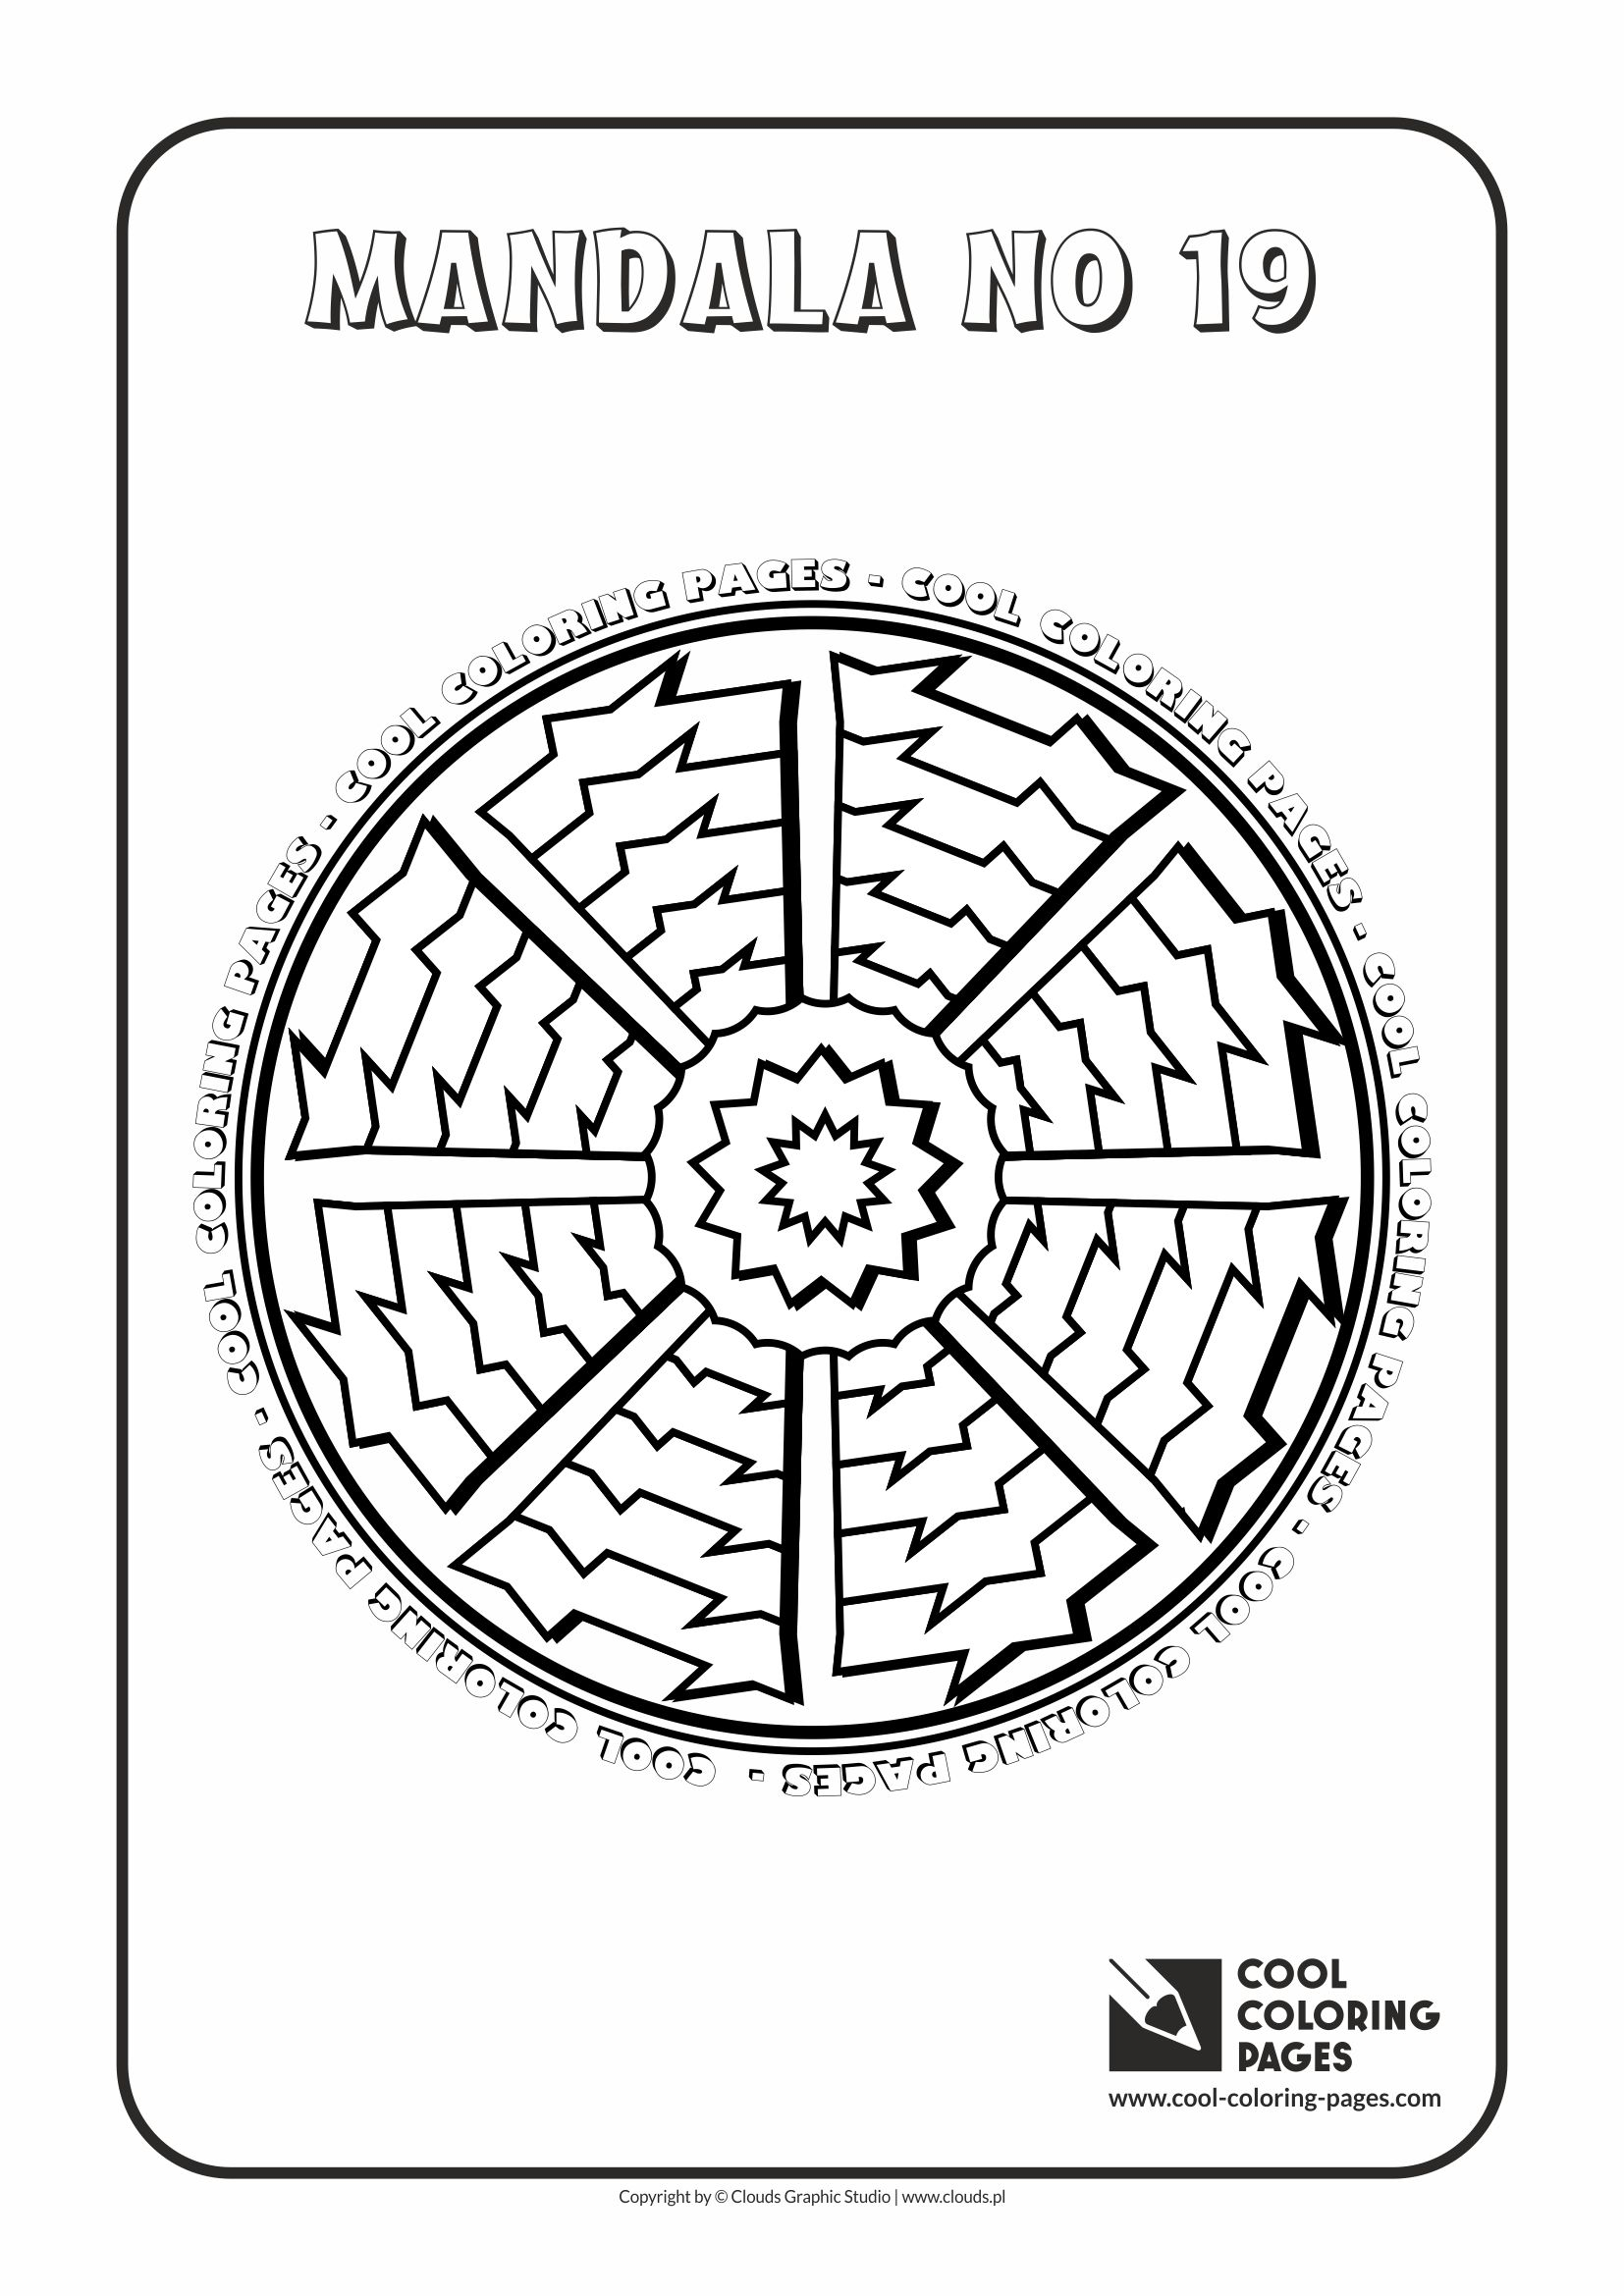 Cool Coloring Pages - Mandalas / Mandala no 19